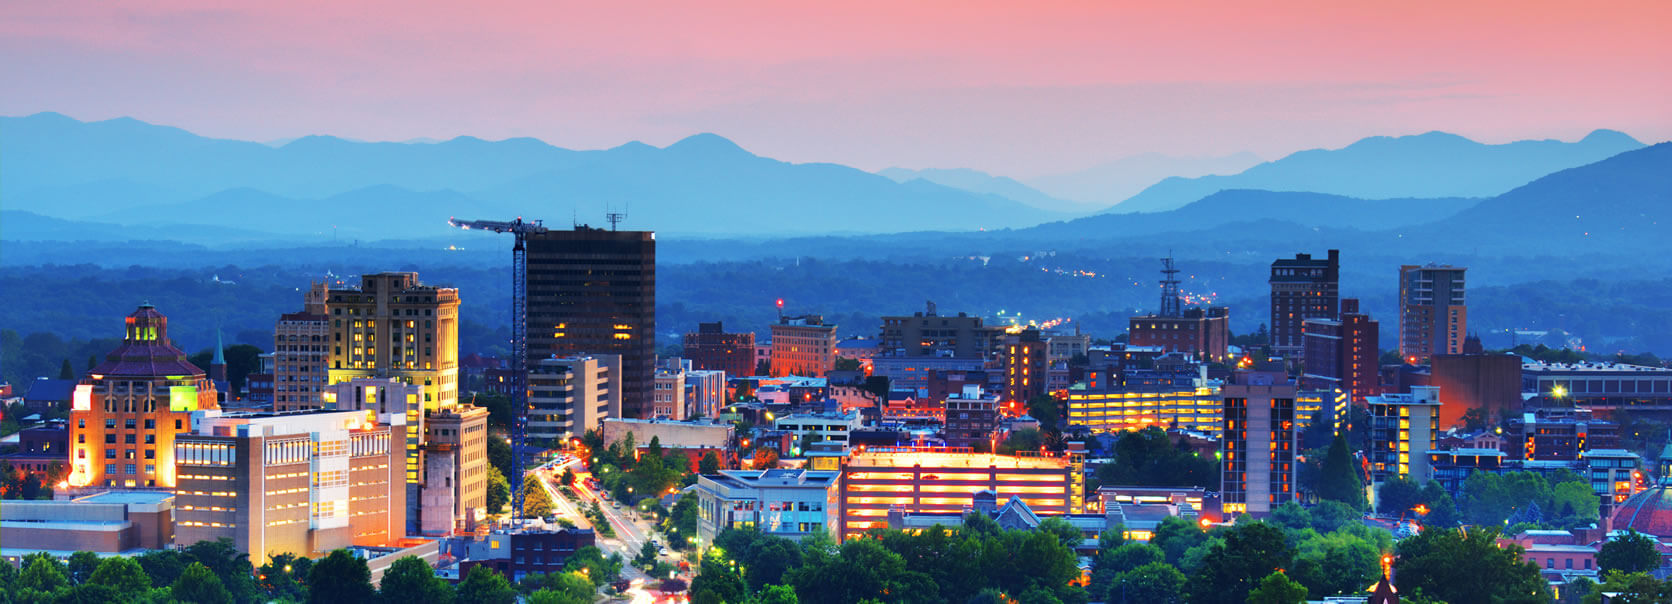 asheville-downtown-sunset-opt